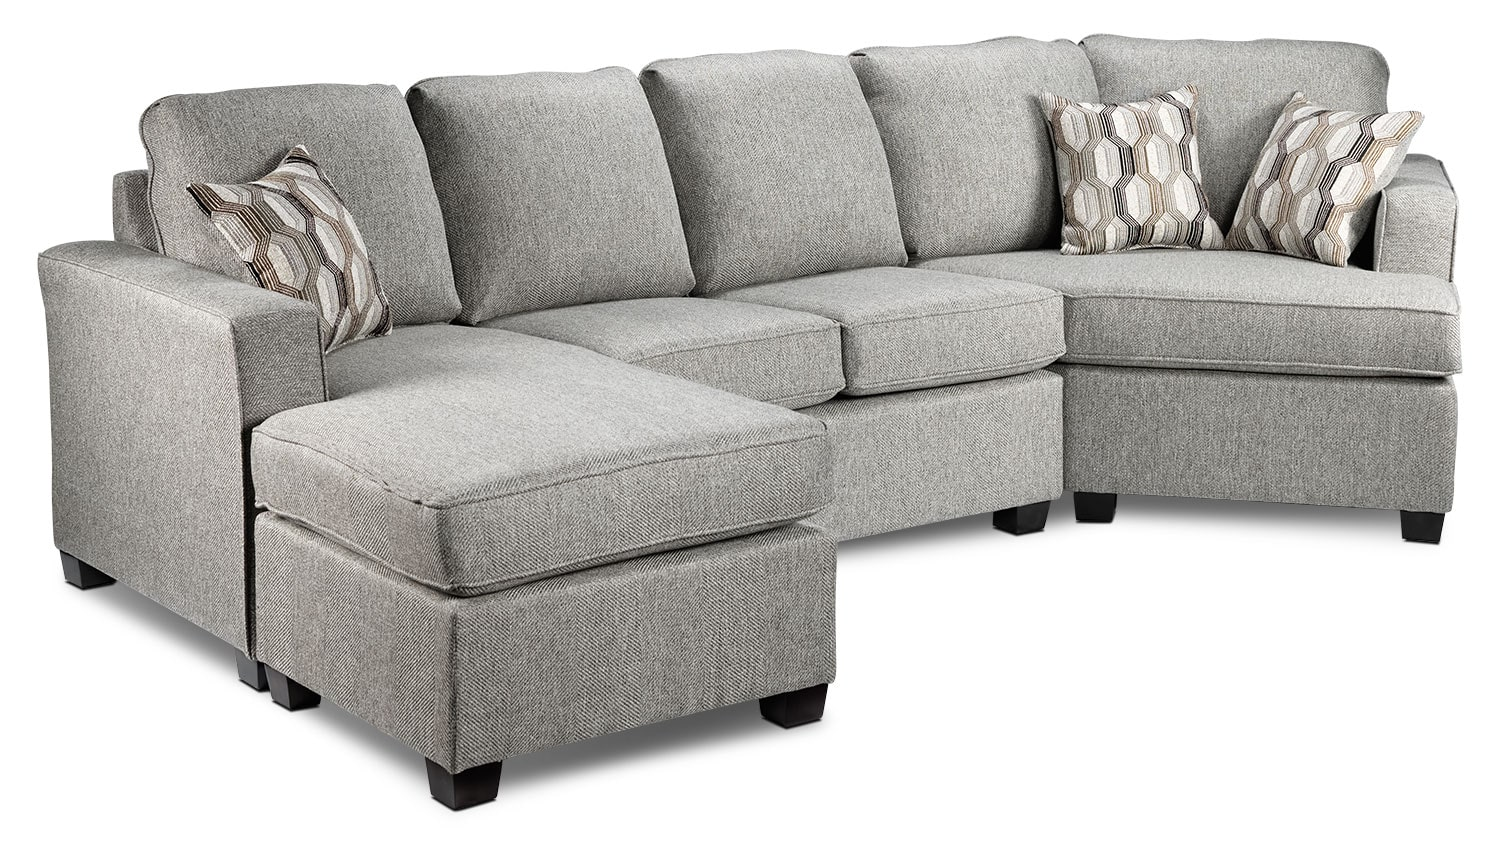 Downtown 2-Piece Left-Facing Sectional - Grey